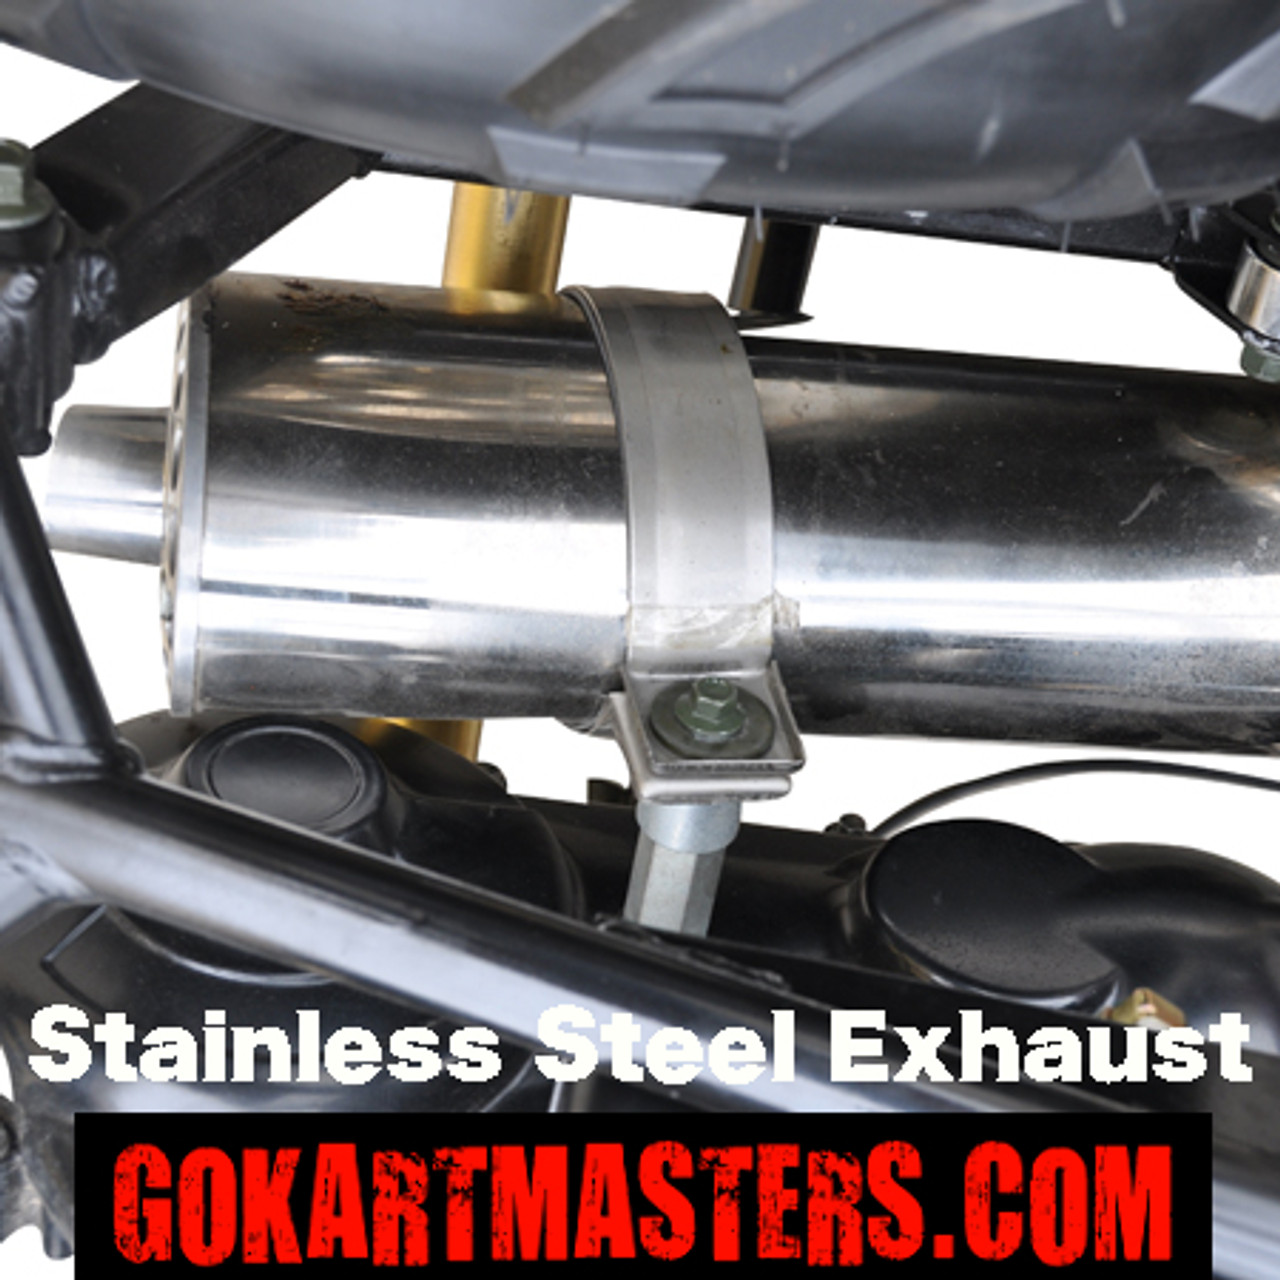 TrailMaster 150 XRS Go-Kart - Stainless Steel Exhaust